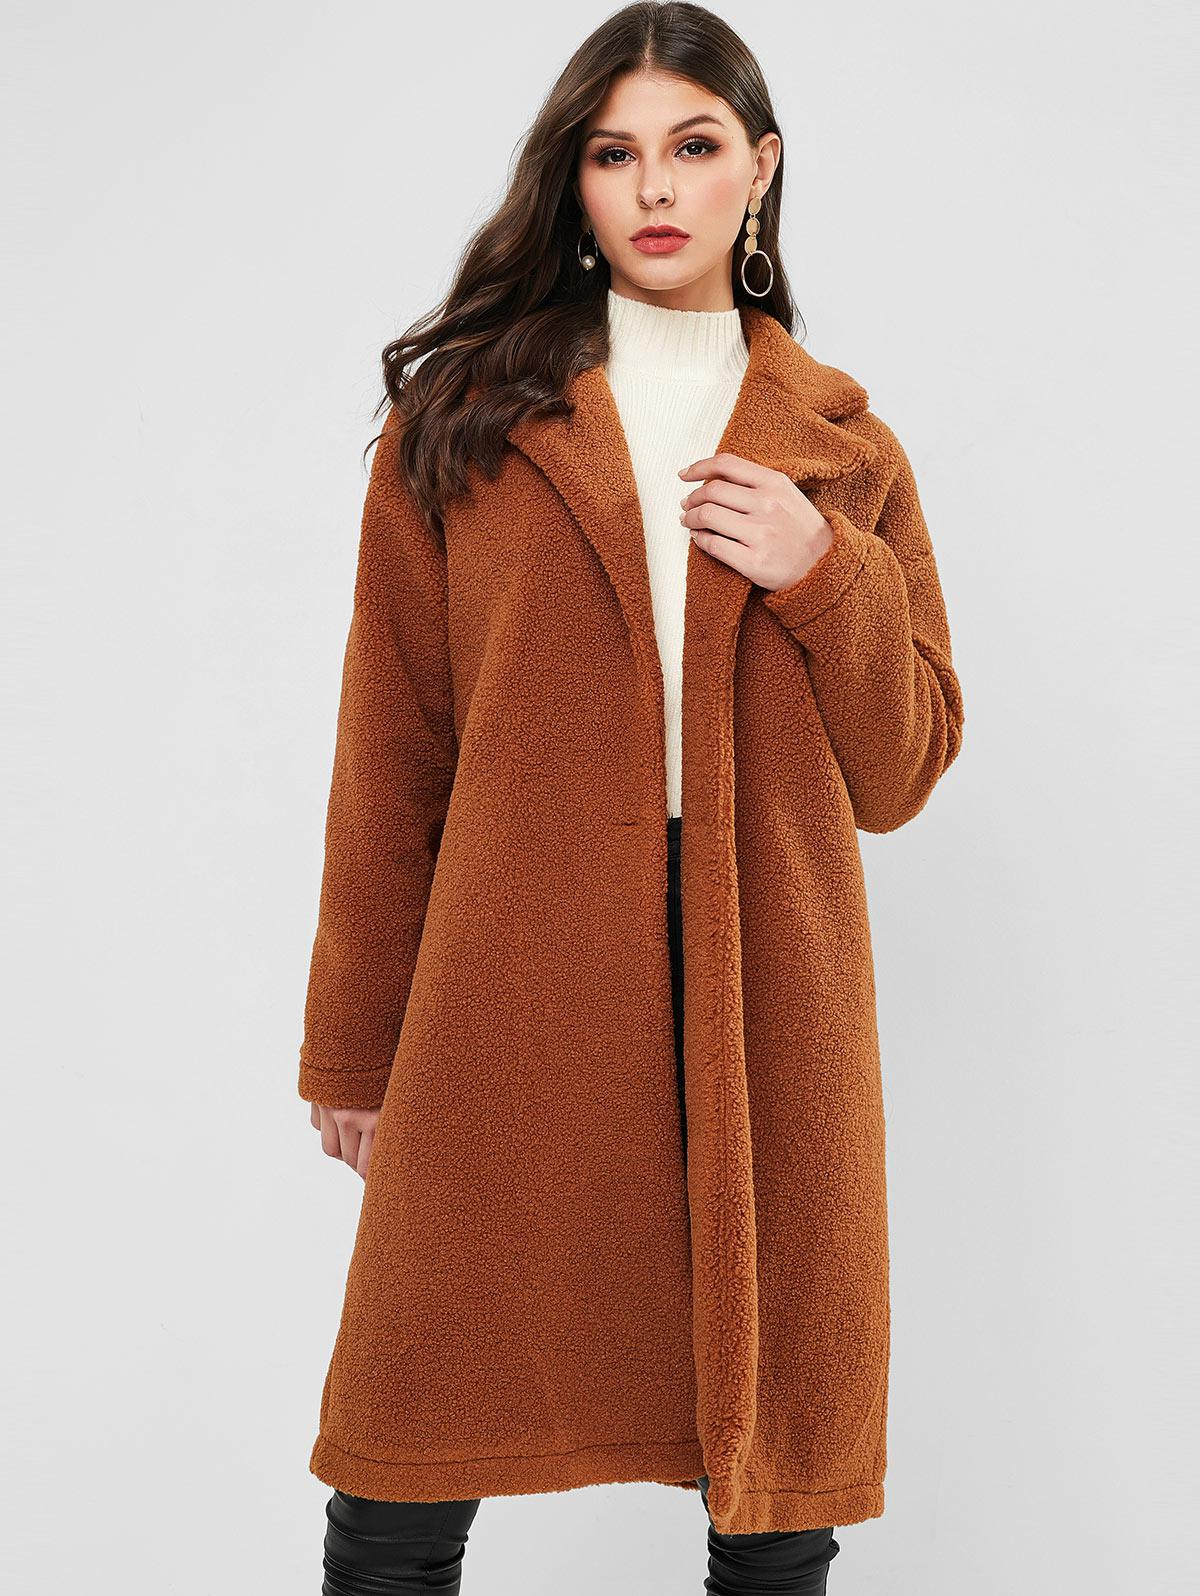 ZAFUL Button Up Solid Lapel Teddy Coat